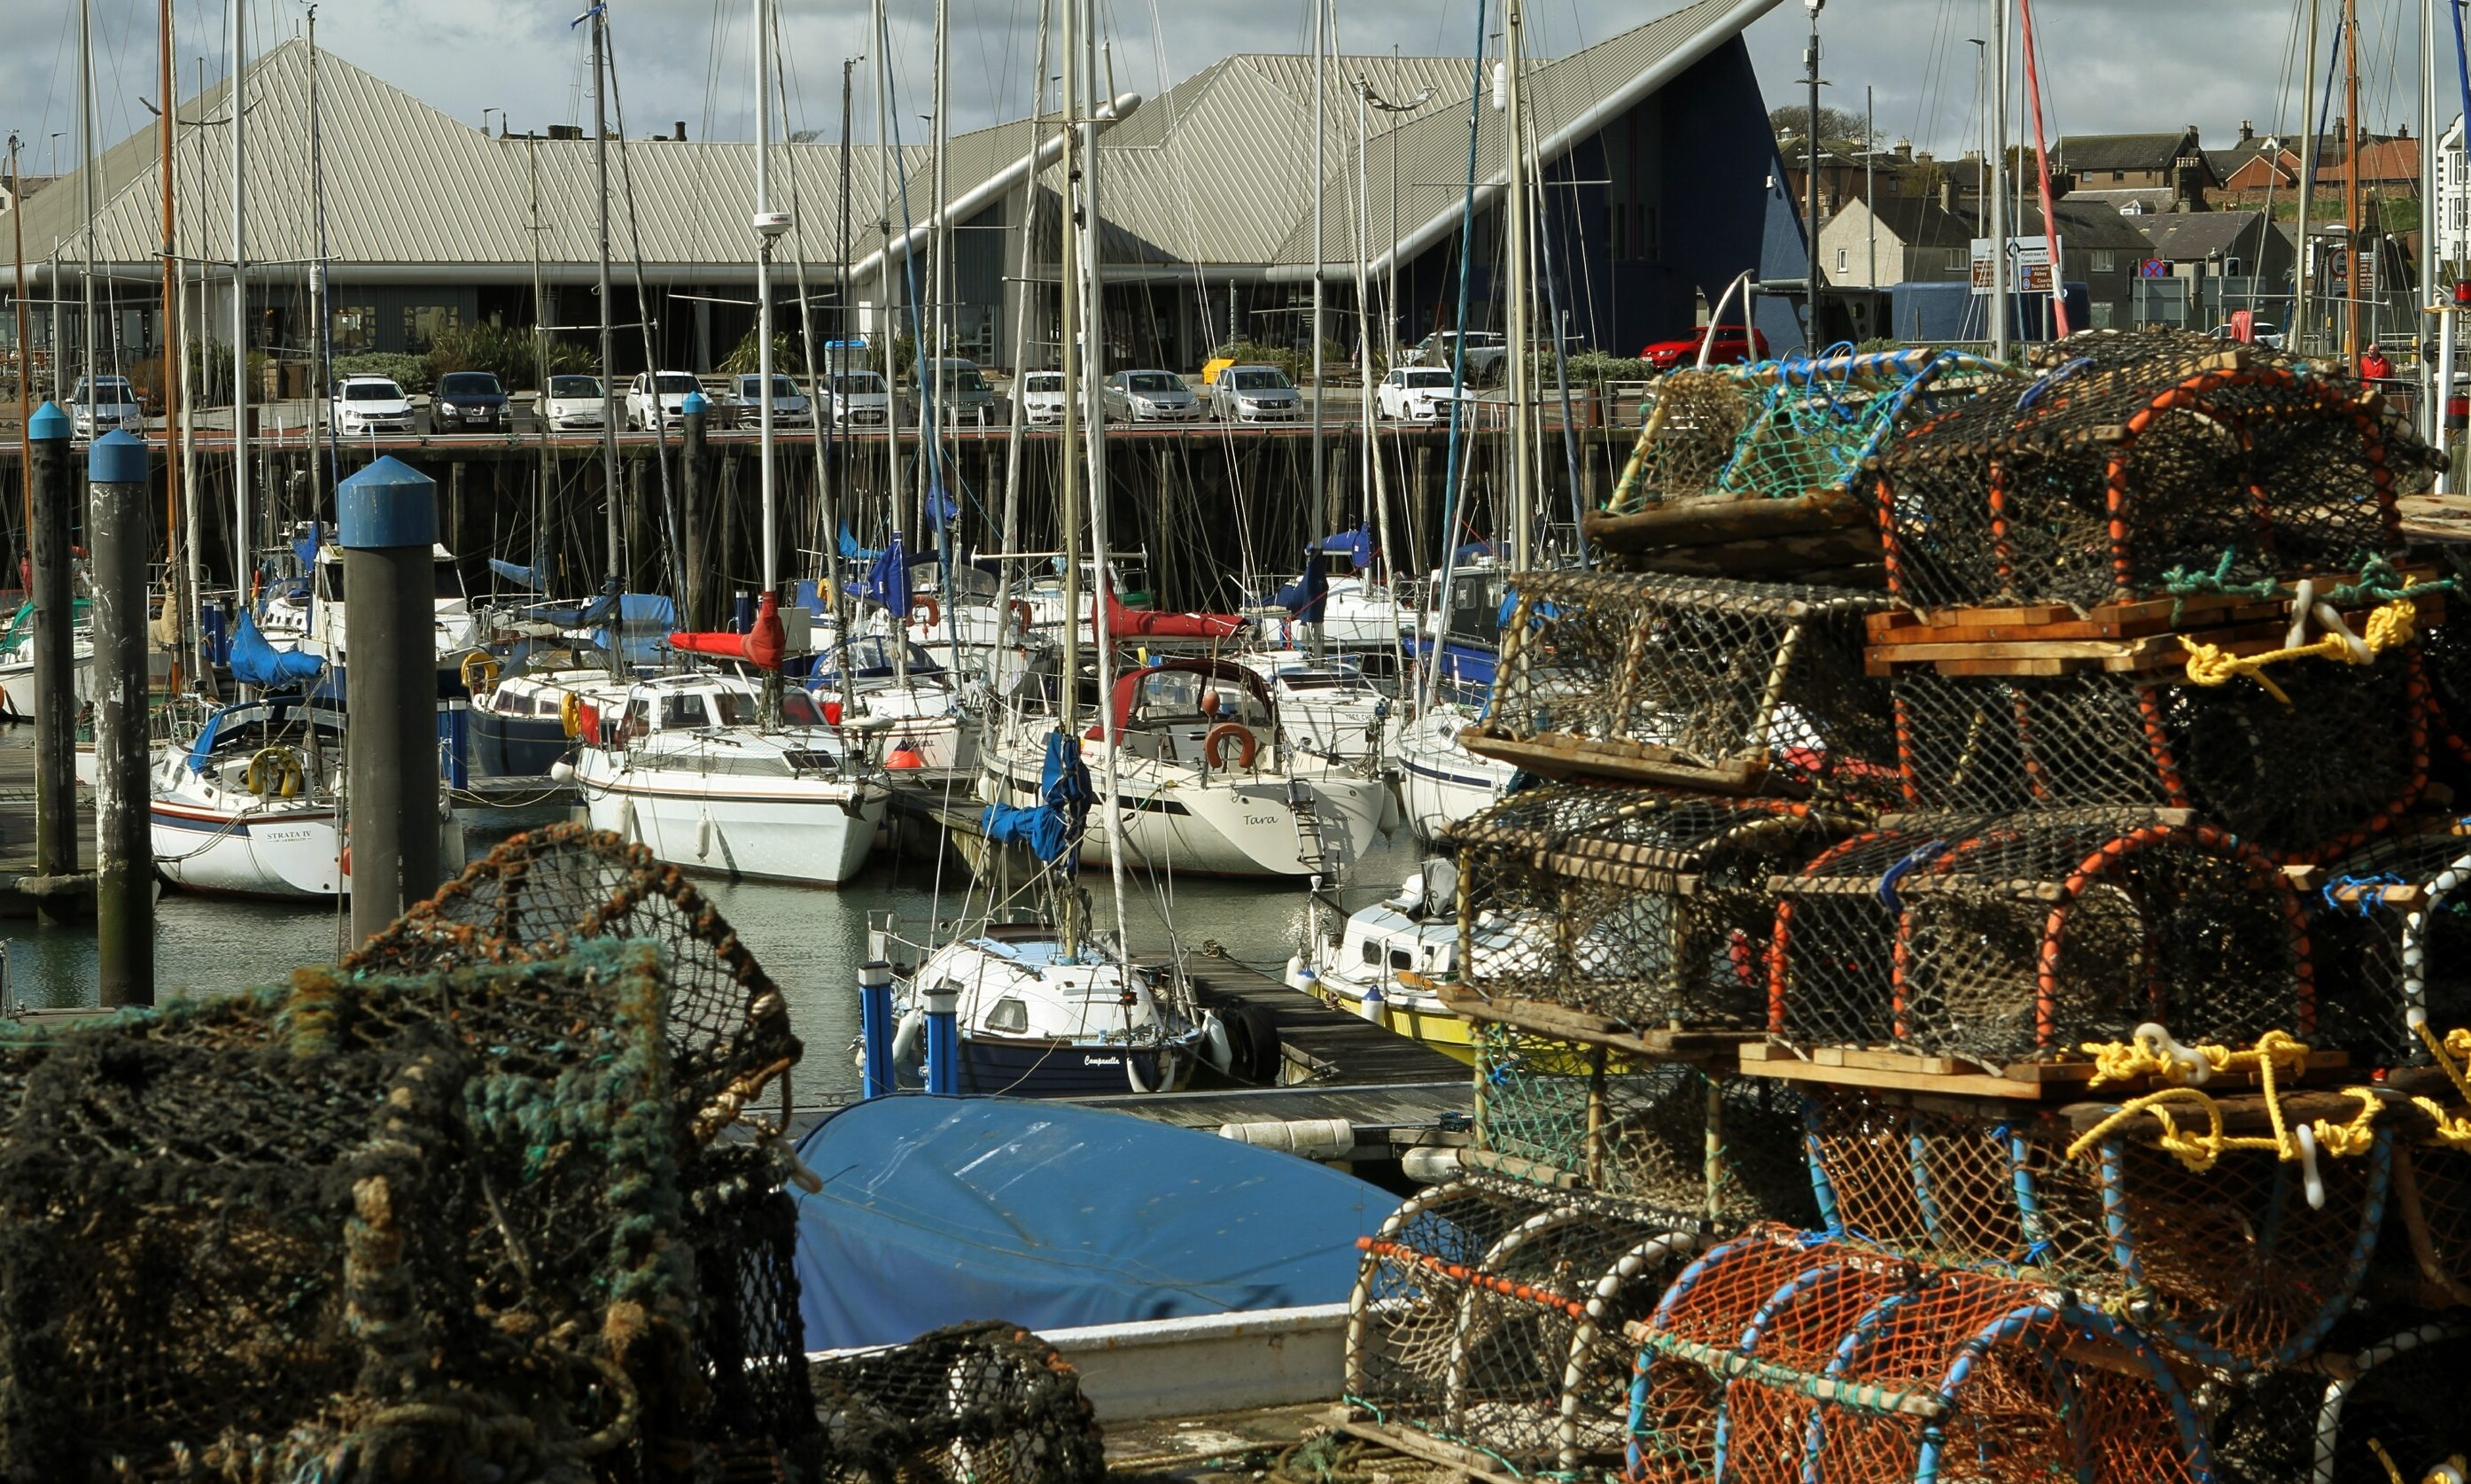 People have been warned against heading to popular spots like Arbroath harbour.